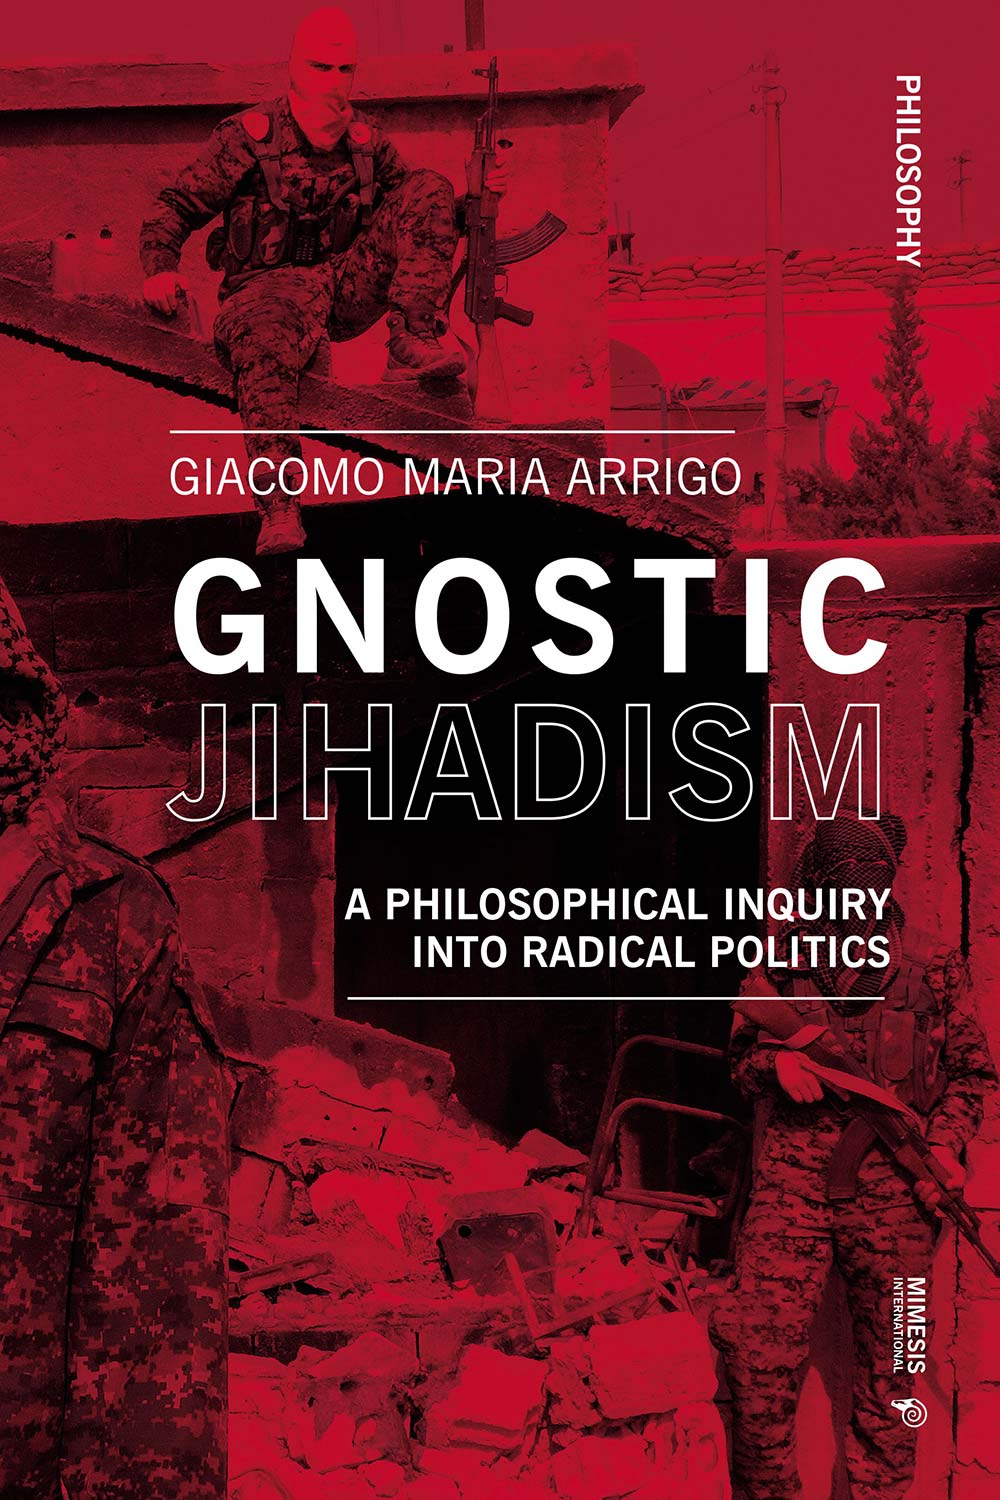 Gnostic Jihadism. A Philosophical Inquiry into Radical Politics